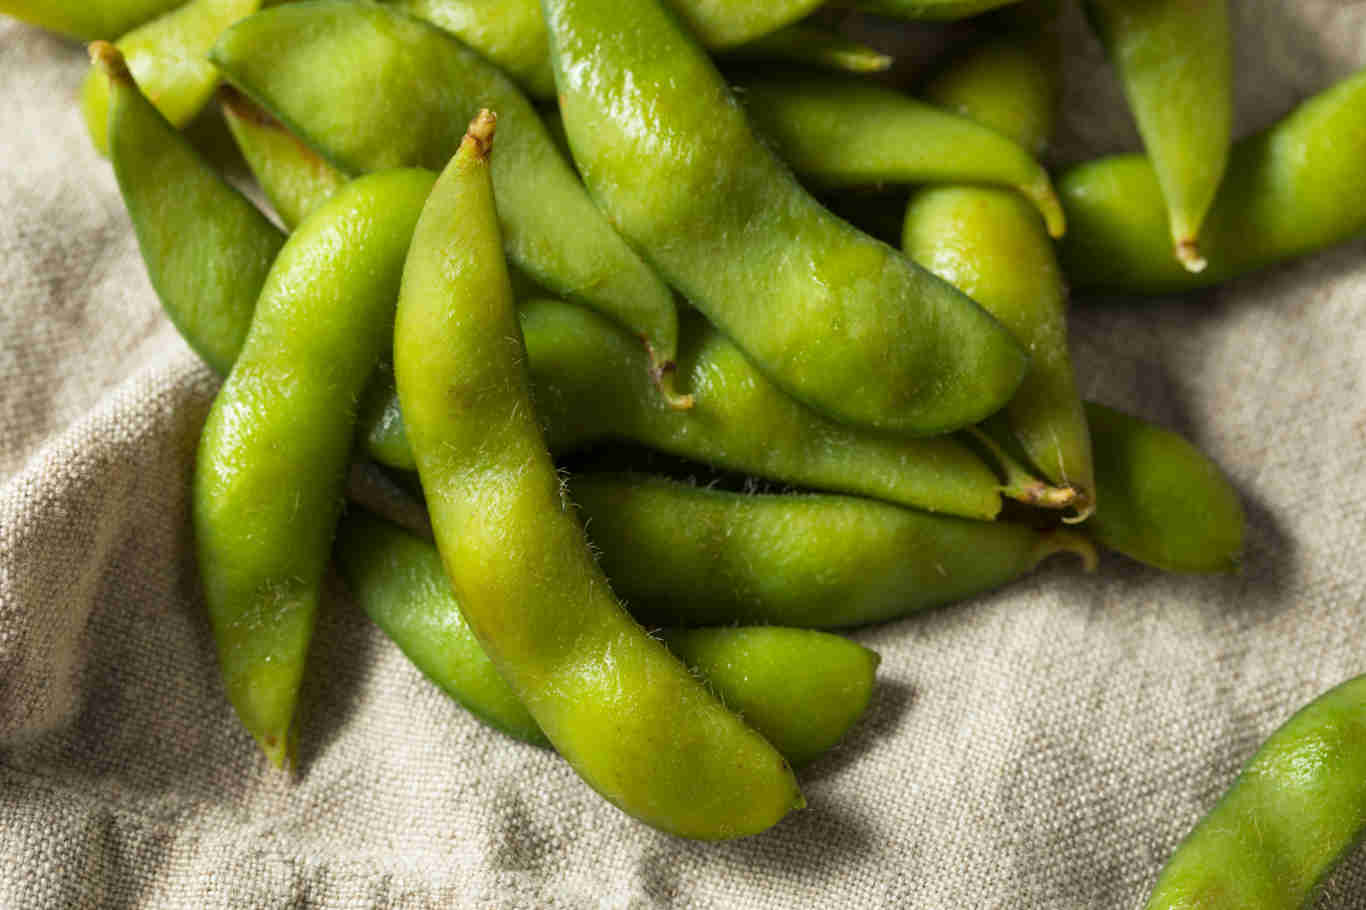 Raw Green Organic Edamame Soy Beans Ready to Eat